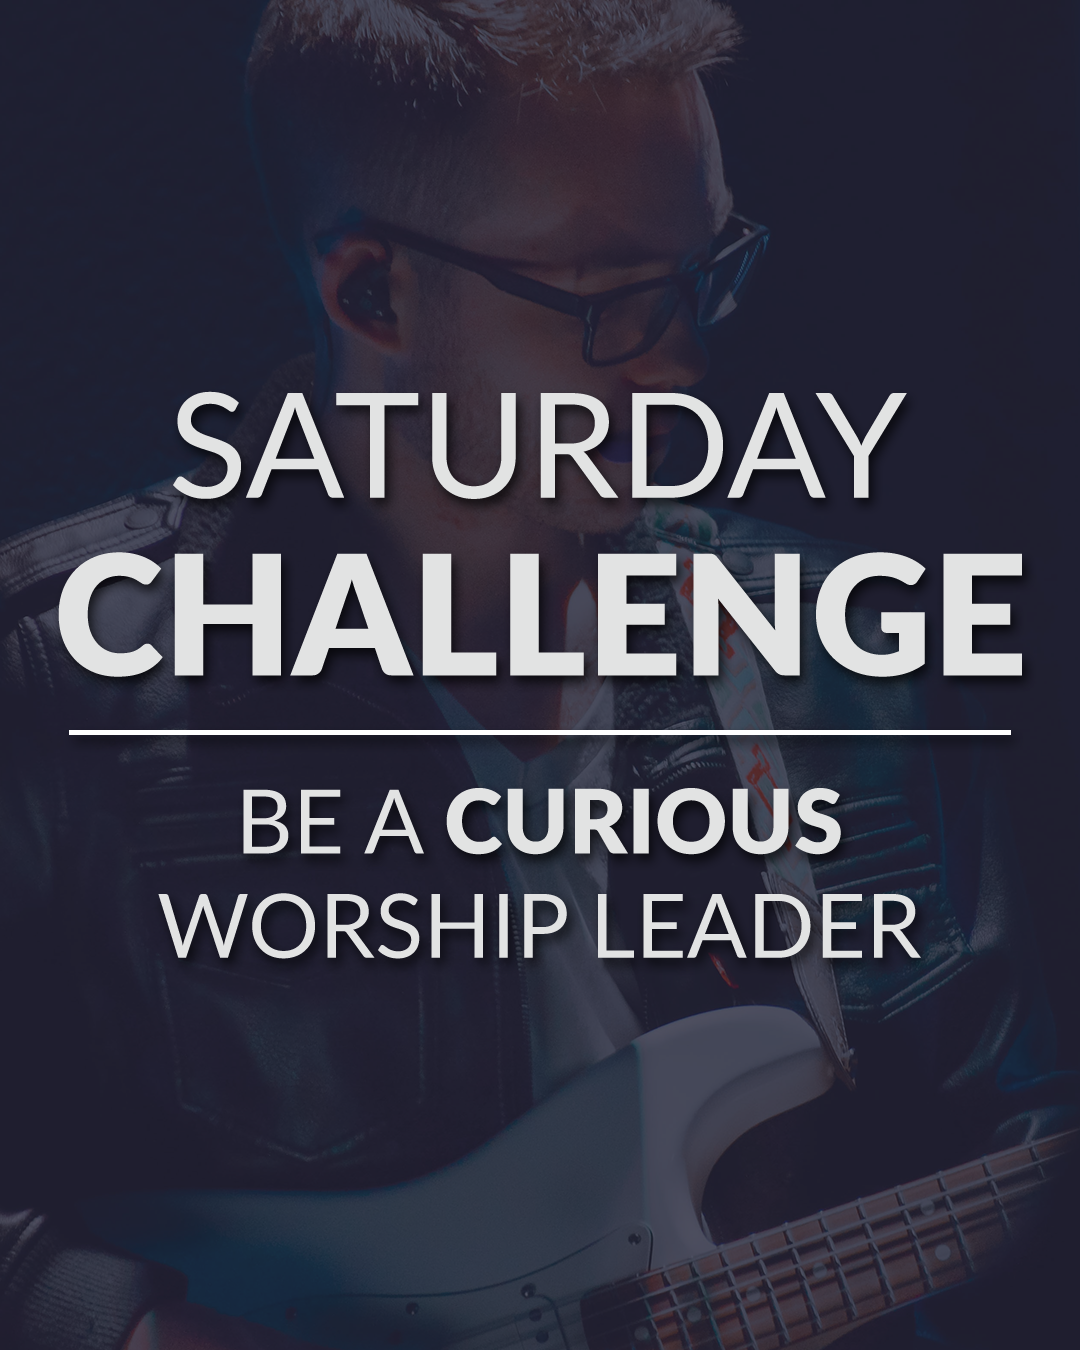 Saturday Challenge - Be A Curious Worship Leader